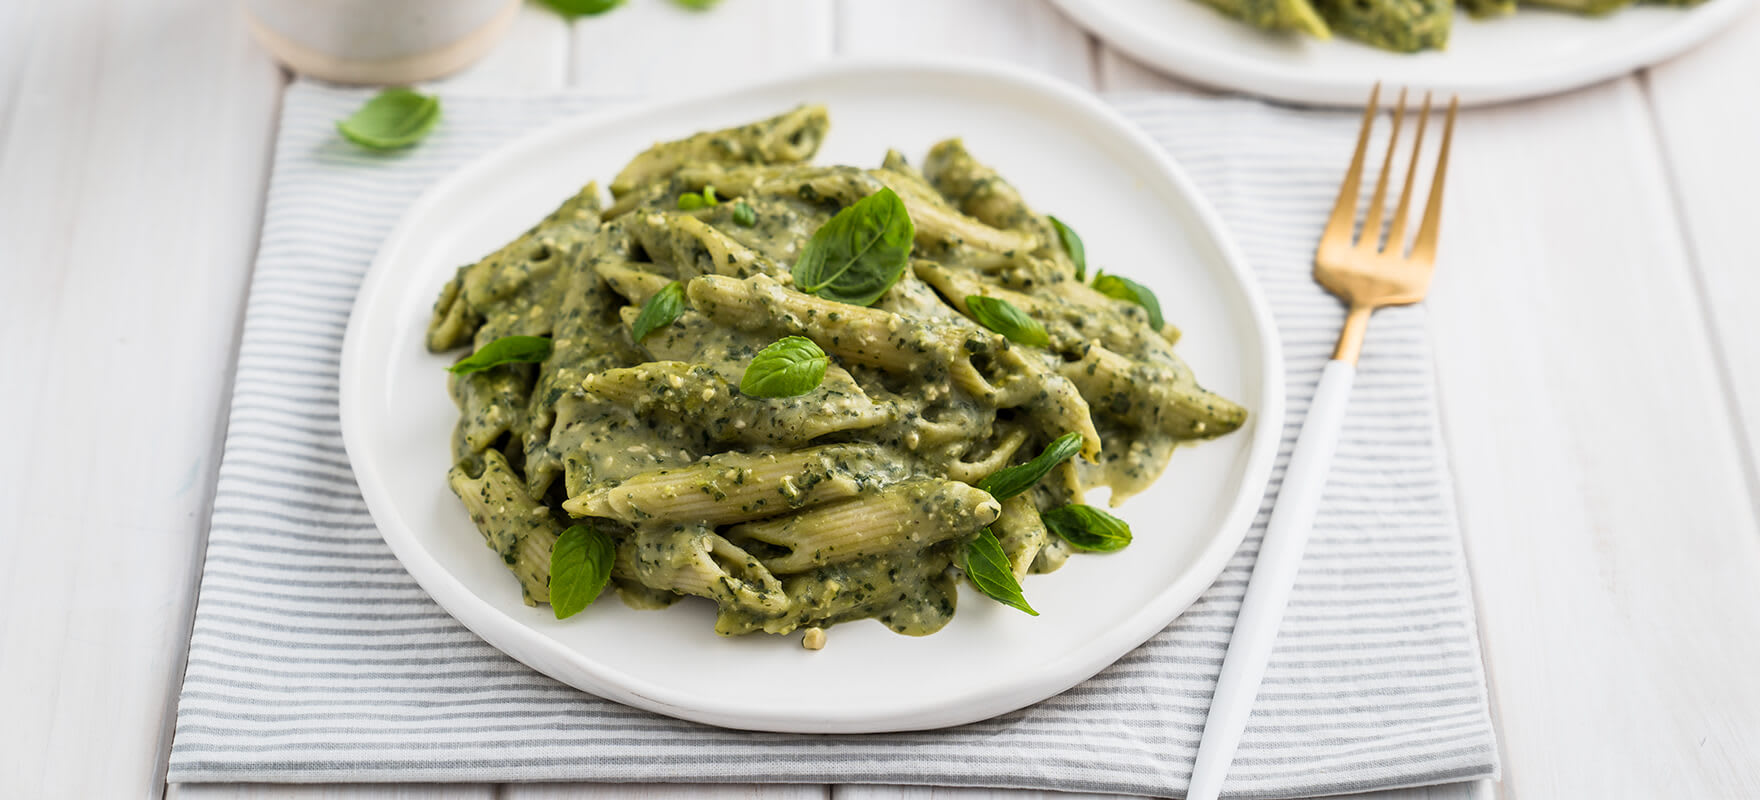 Vegan Creamy Pesto Pasta Sanitarium Health Food Company